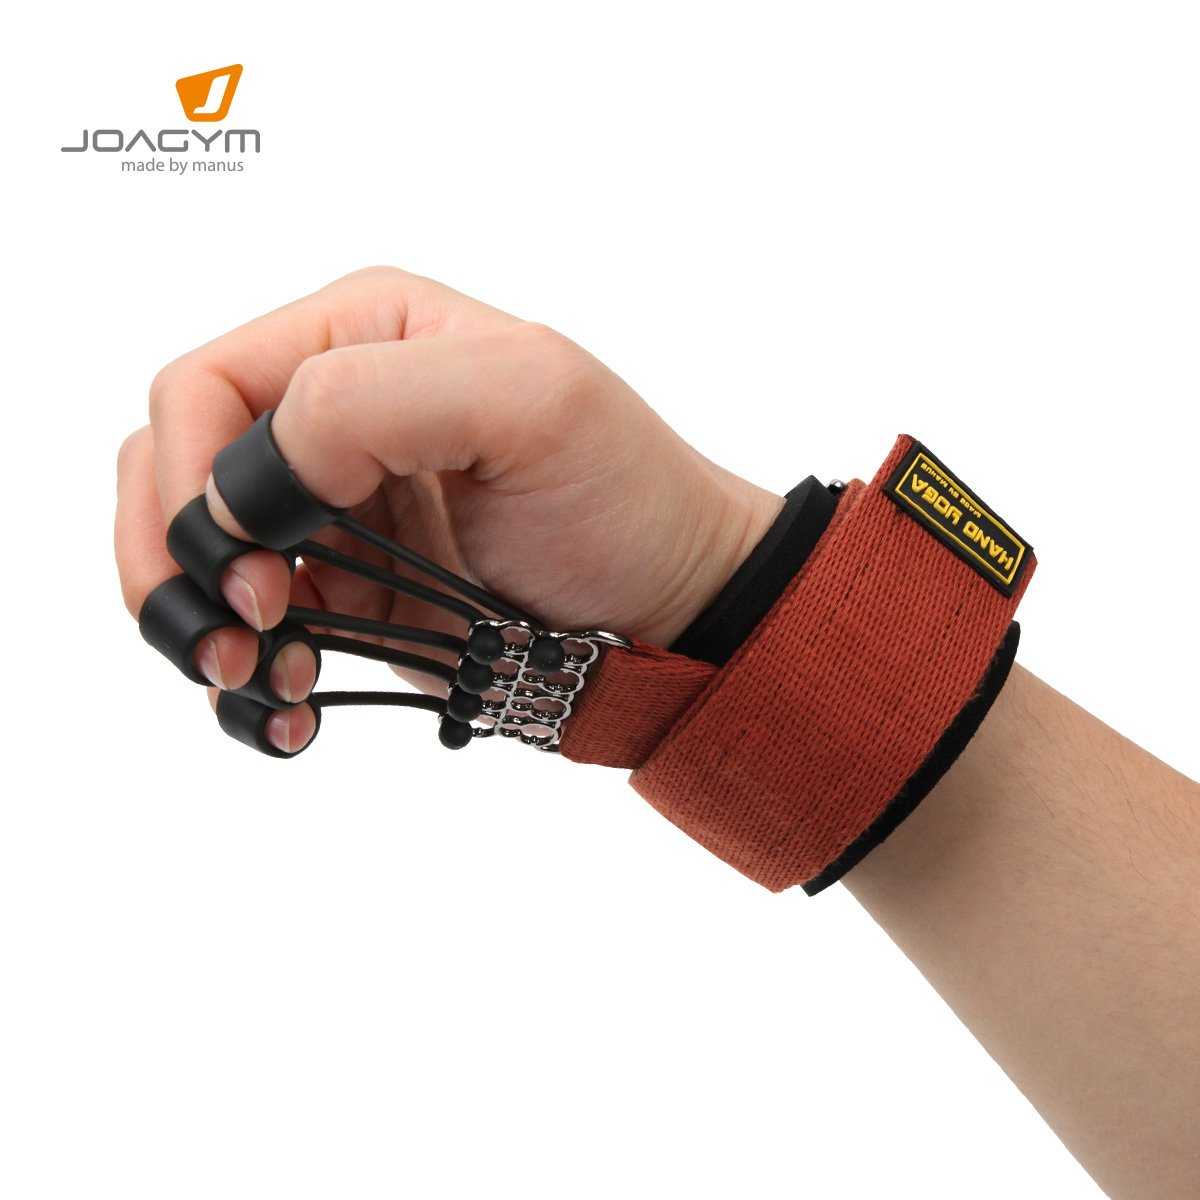 Joagym Finger and Hand Extensor Exerciser Trainer with Resistance Band Stretcher for Guitar, Climbing, Therapy